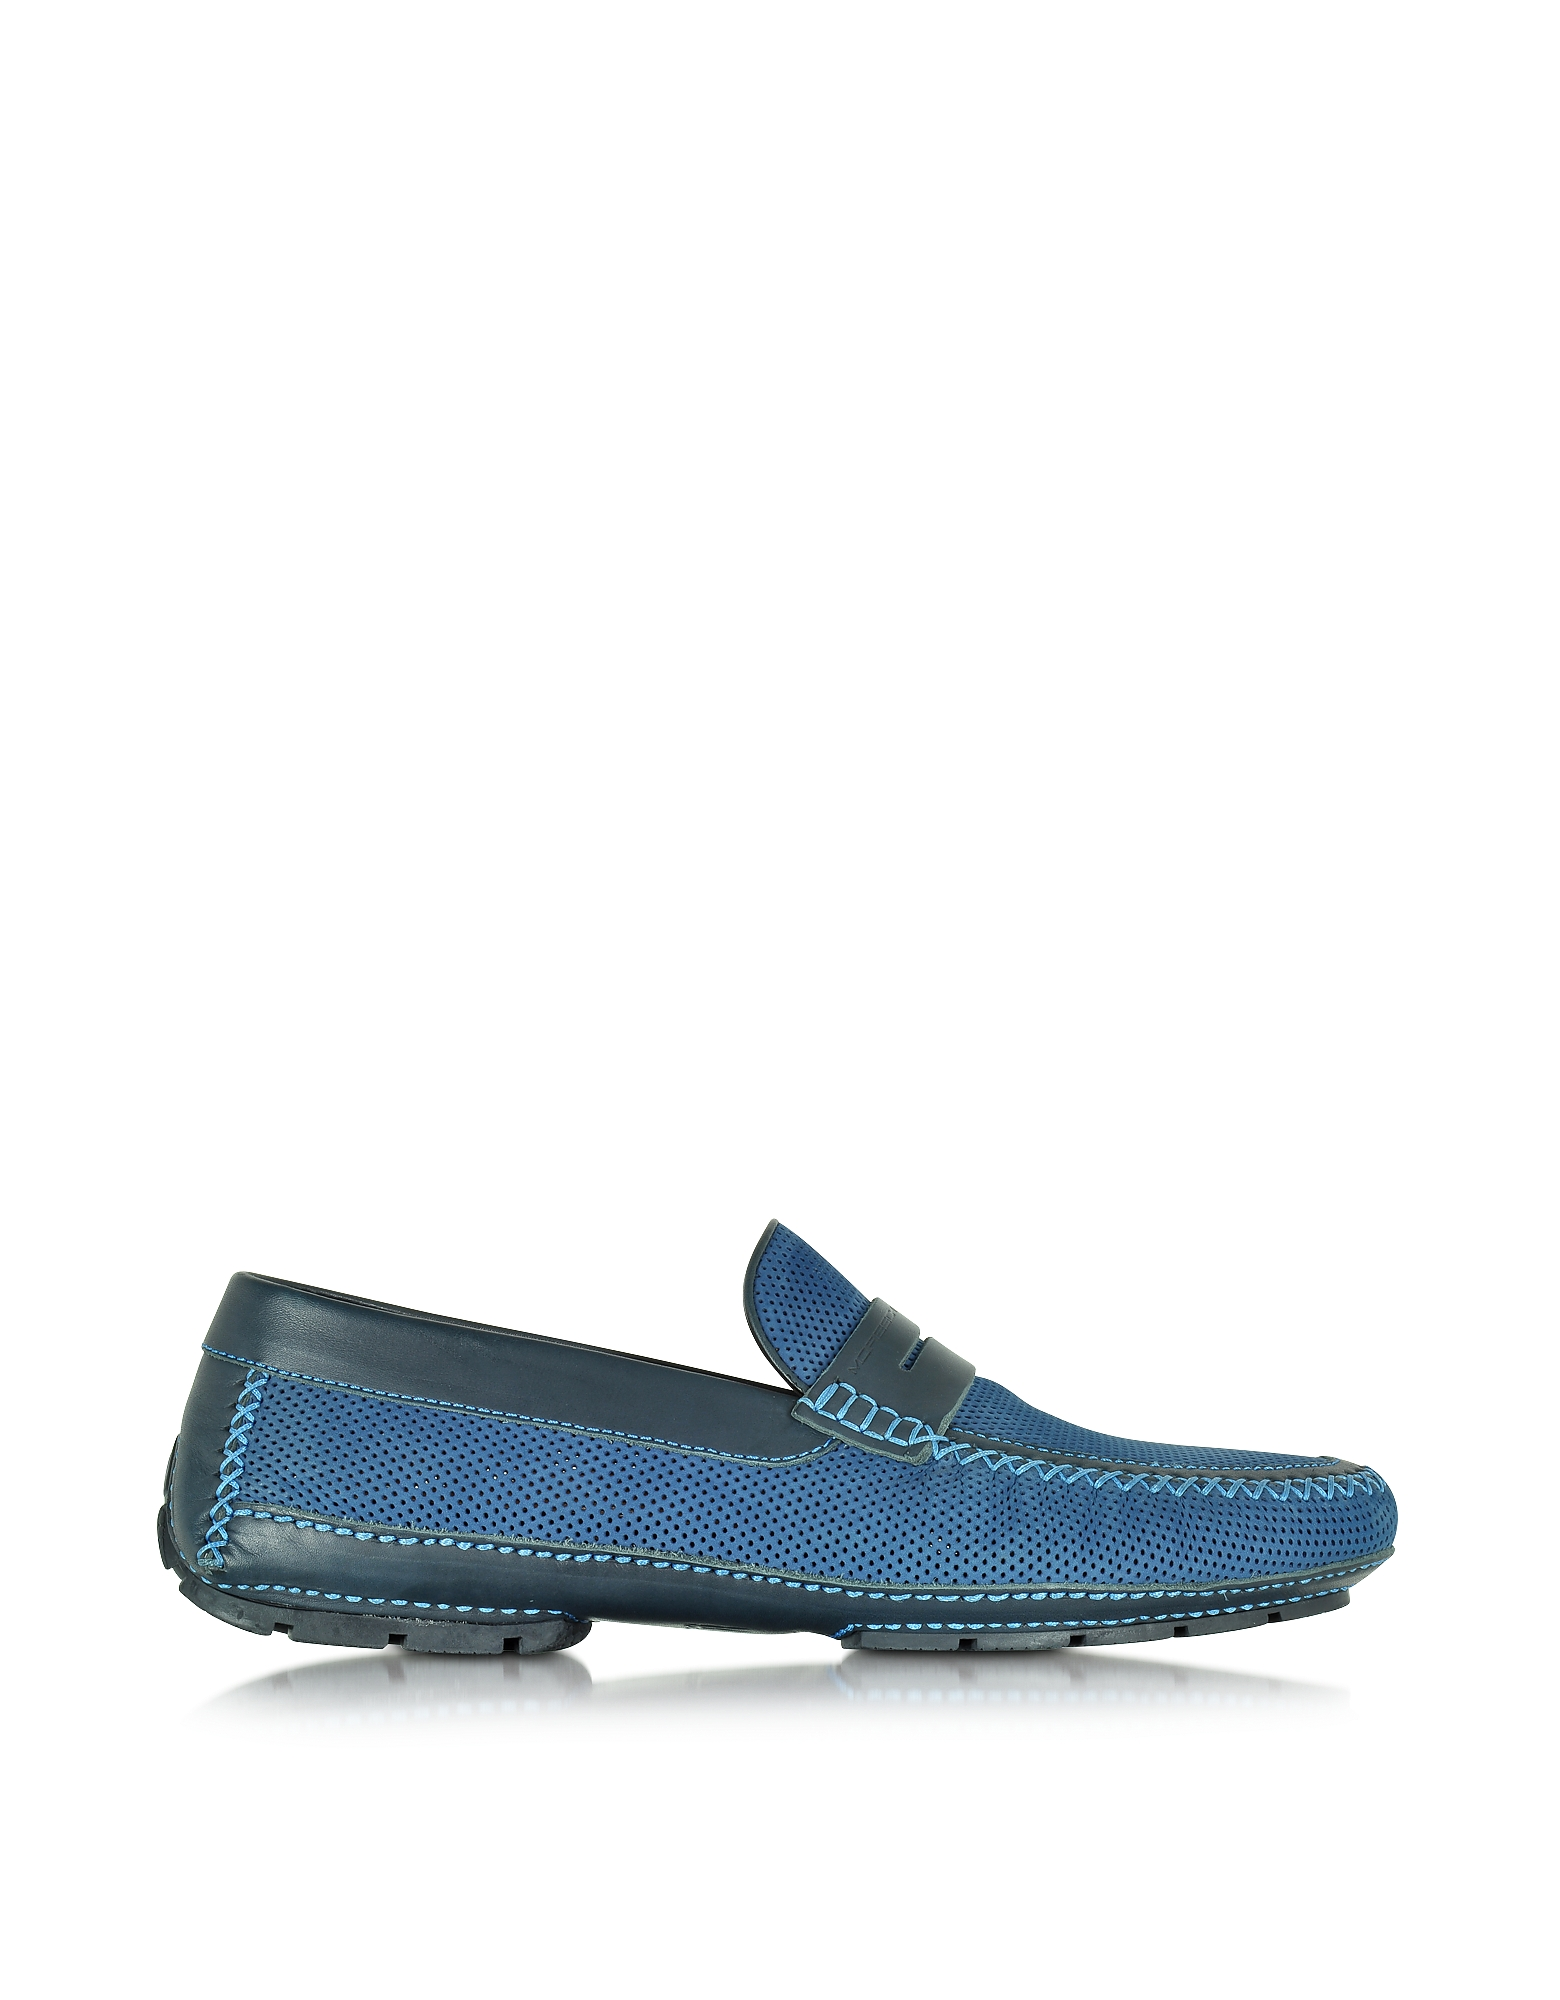 Moreschi Shoes, Bahamas Blue Perforated Nubuck Driver Shoes w/Rubber Sole